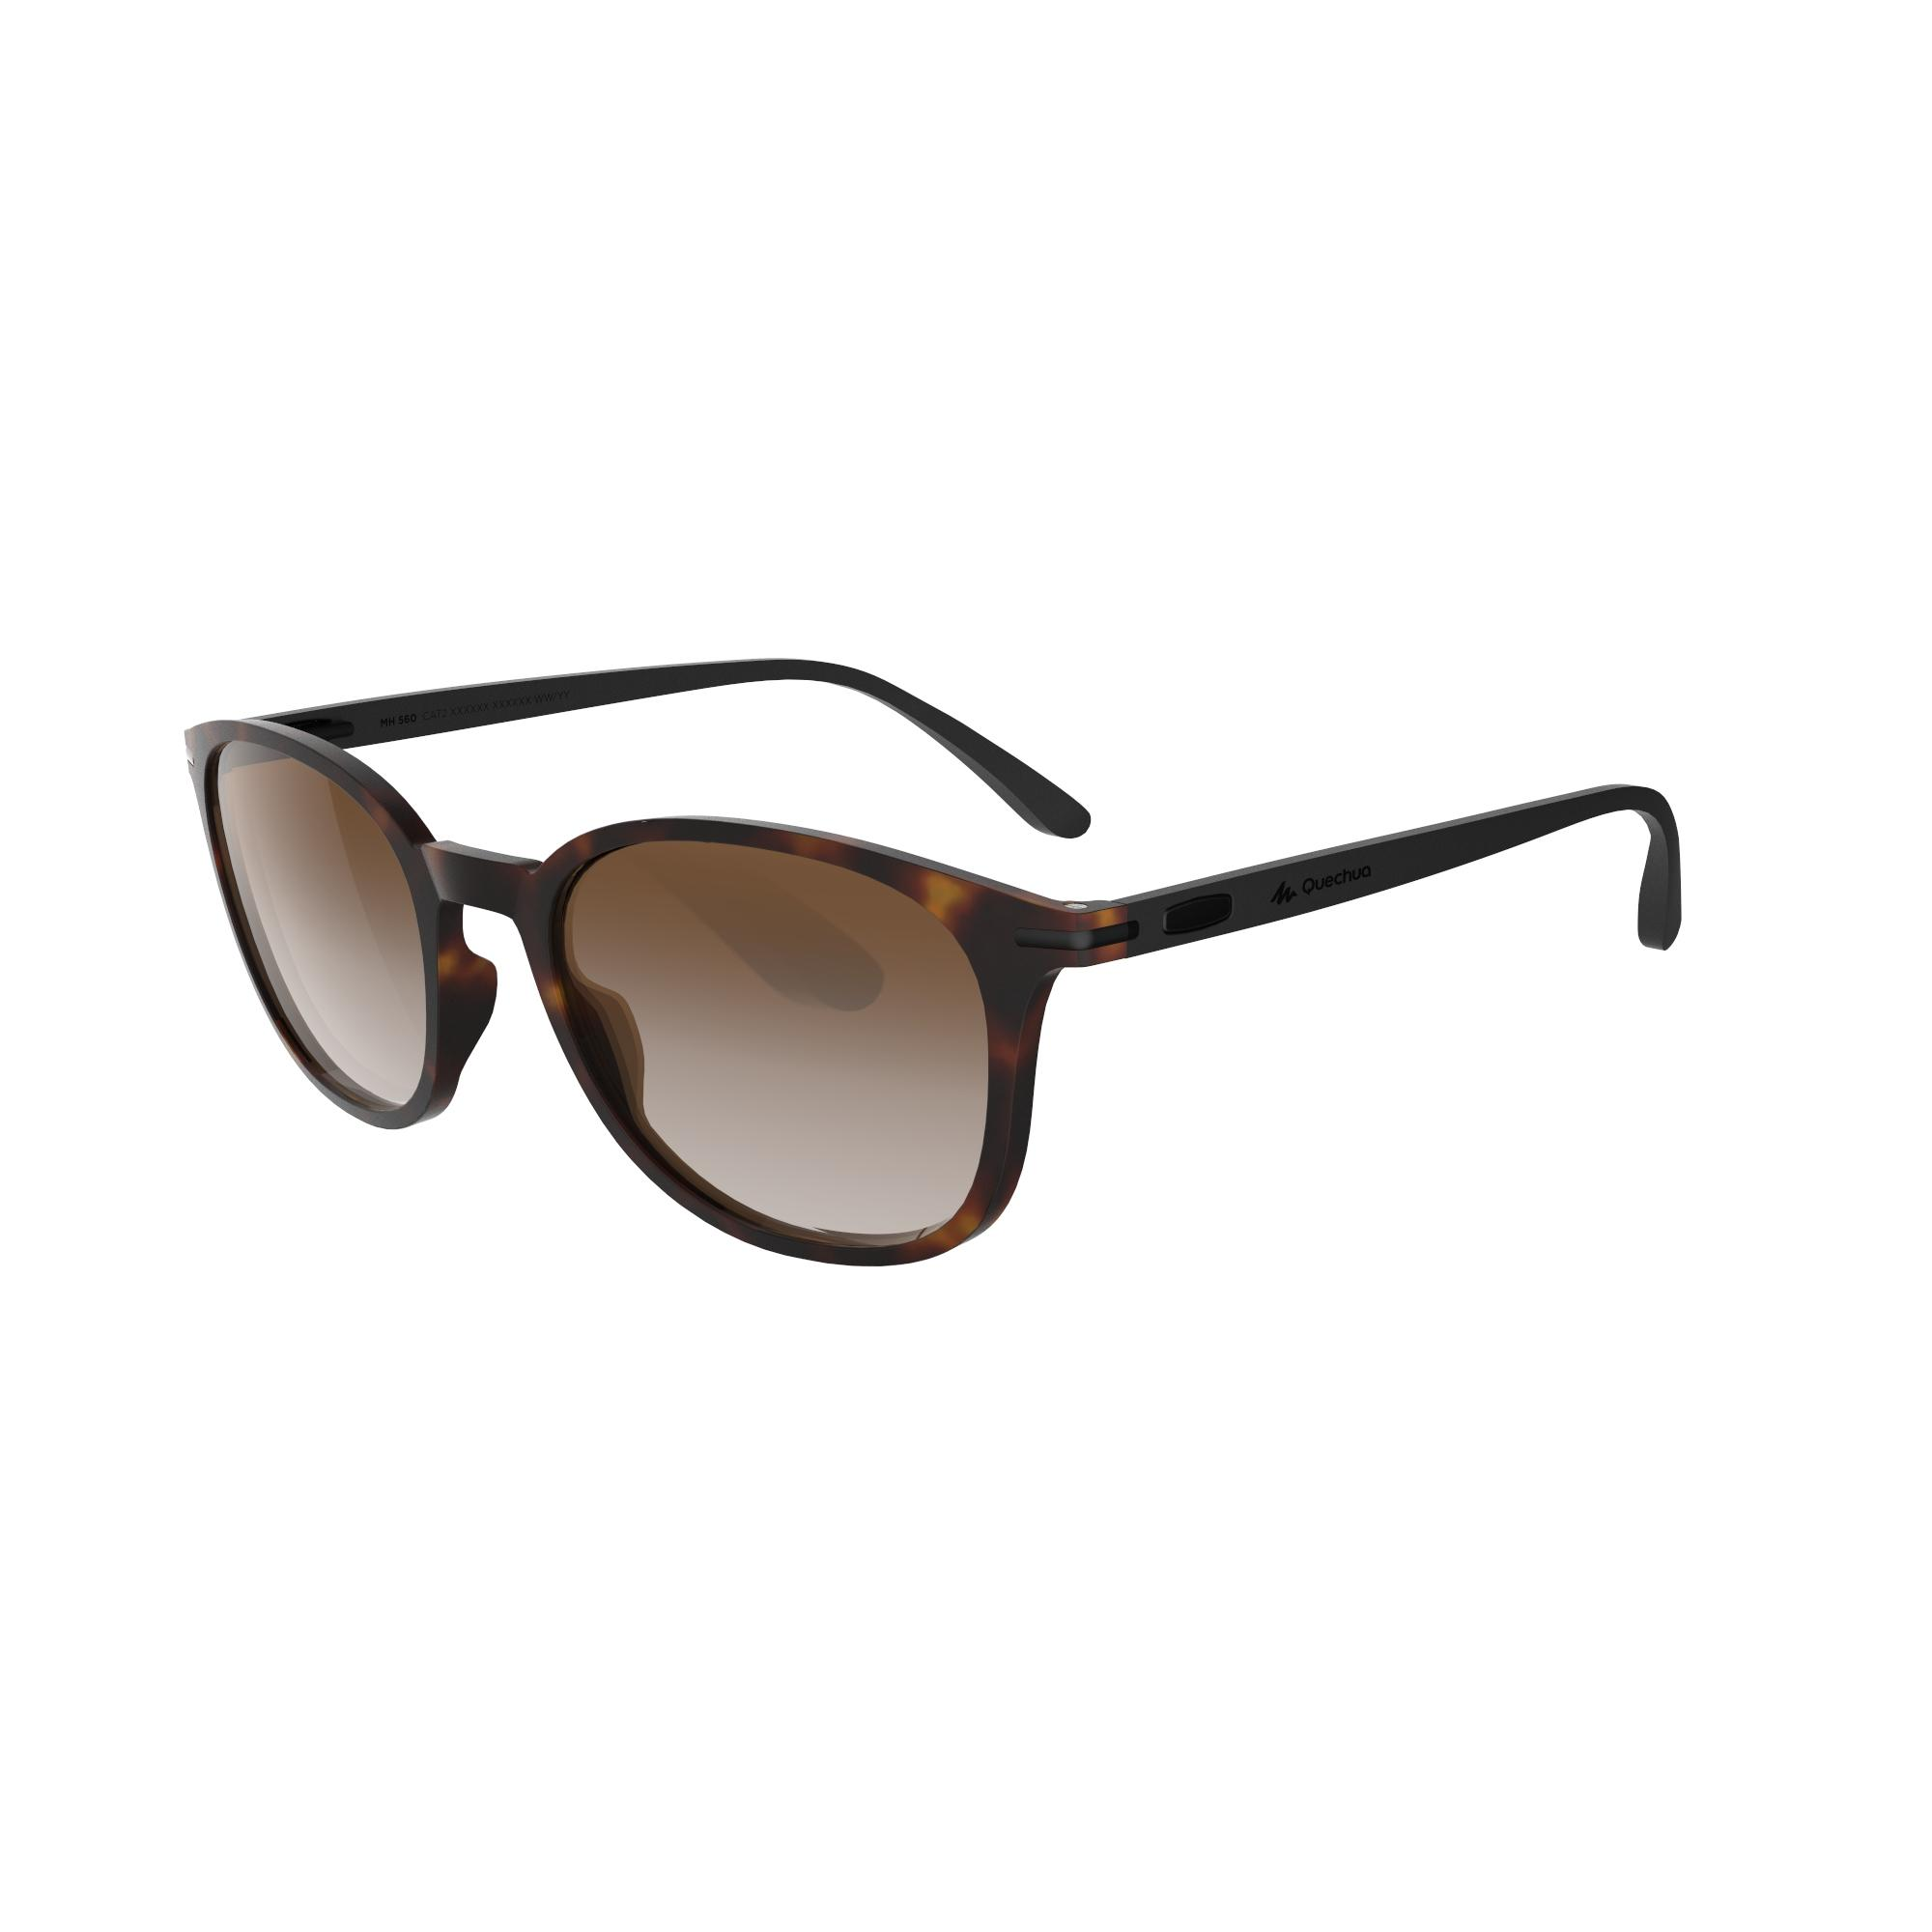 MH 560 Category 2 Hiking Sunglasses - Brown/Green gradation